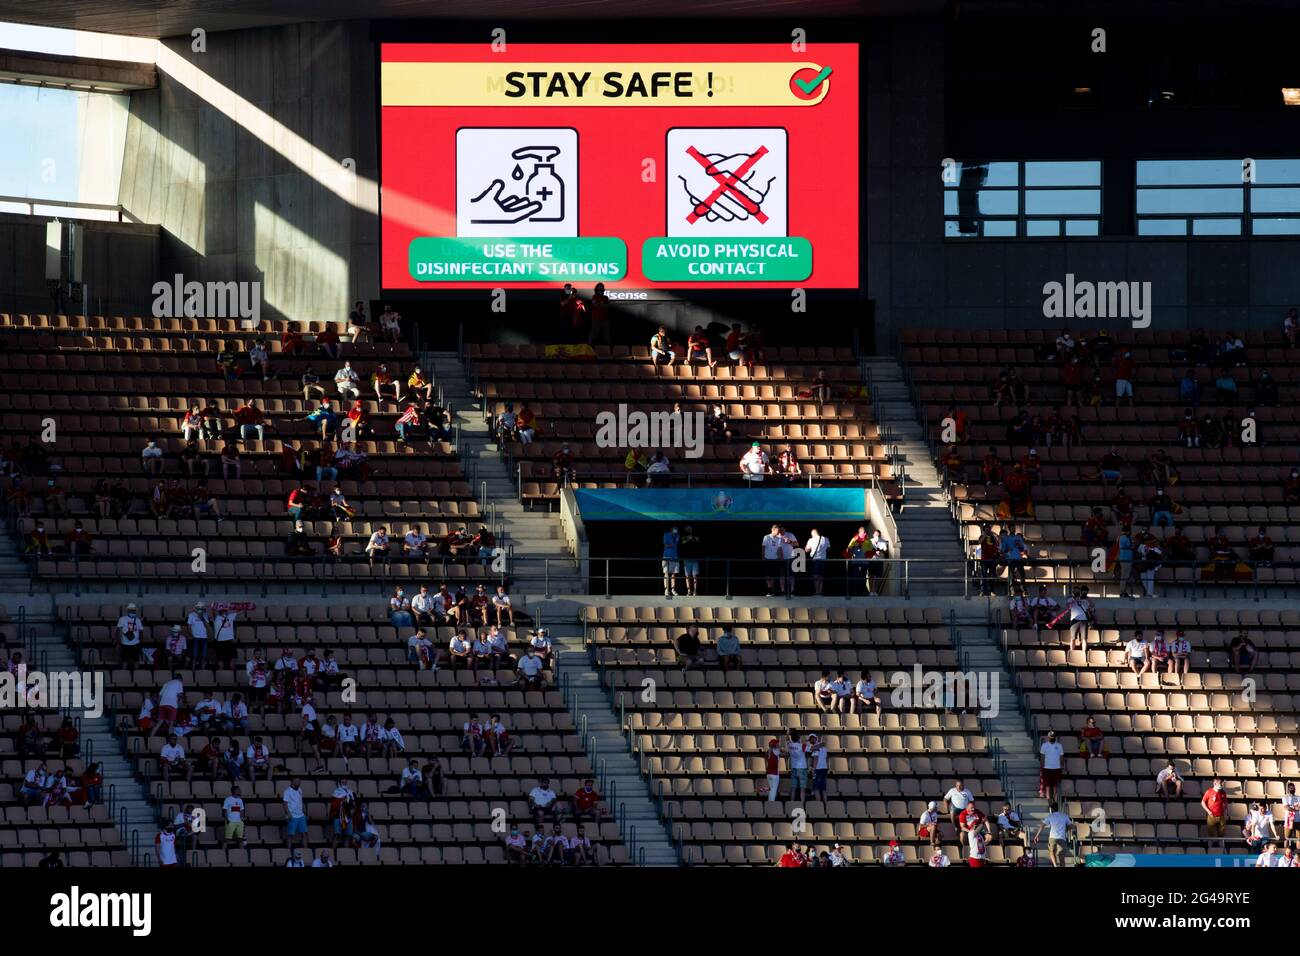 Seville, Spain. 19th June, 2021. The screen written stay safe is seen during the Group E match between Spain and Poland at the UEFA Euro 2020 in Seville, Spain, June 19, 2021. Credit: Meng Dingbo/Xinhua/Alamy Live News Stock Photo